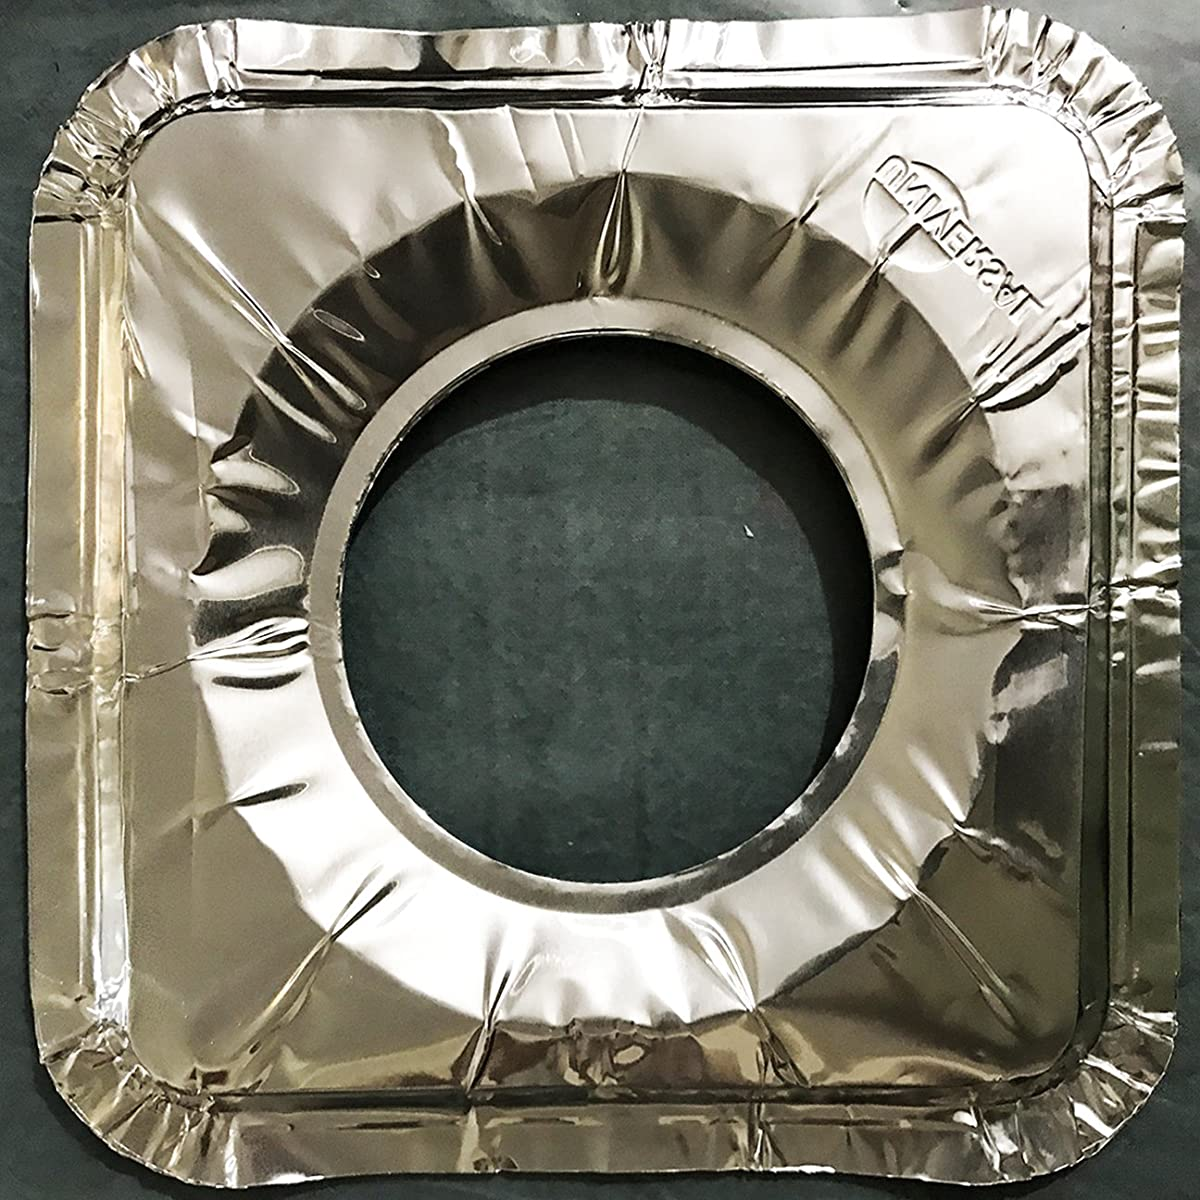 40 Square Universal Aluminum Foil Square Gas Burner Disposable Liners BibCovers WHOLESALE